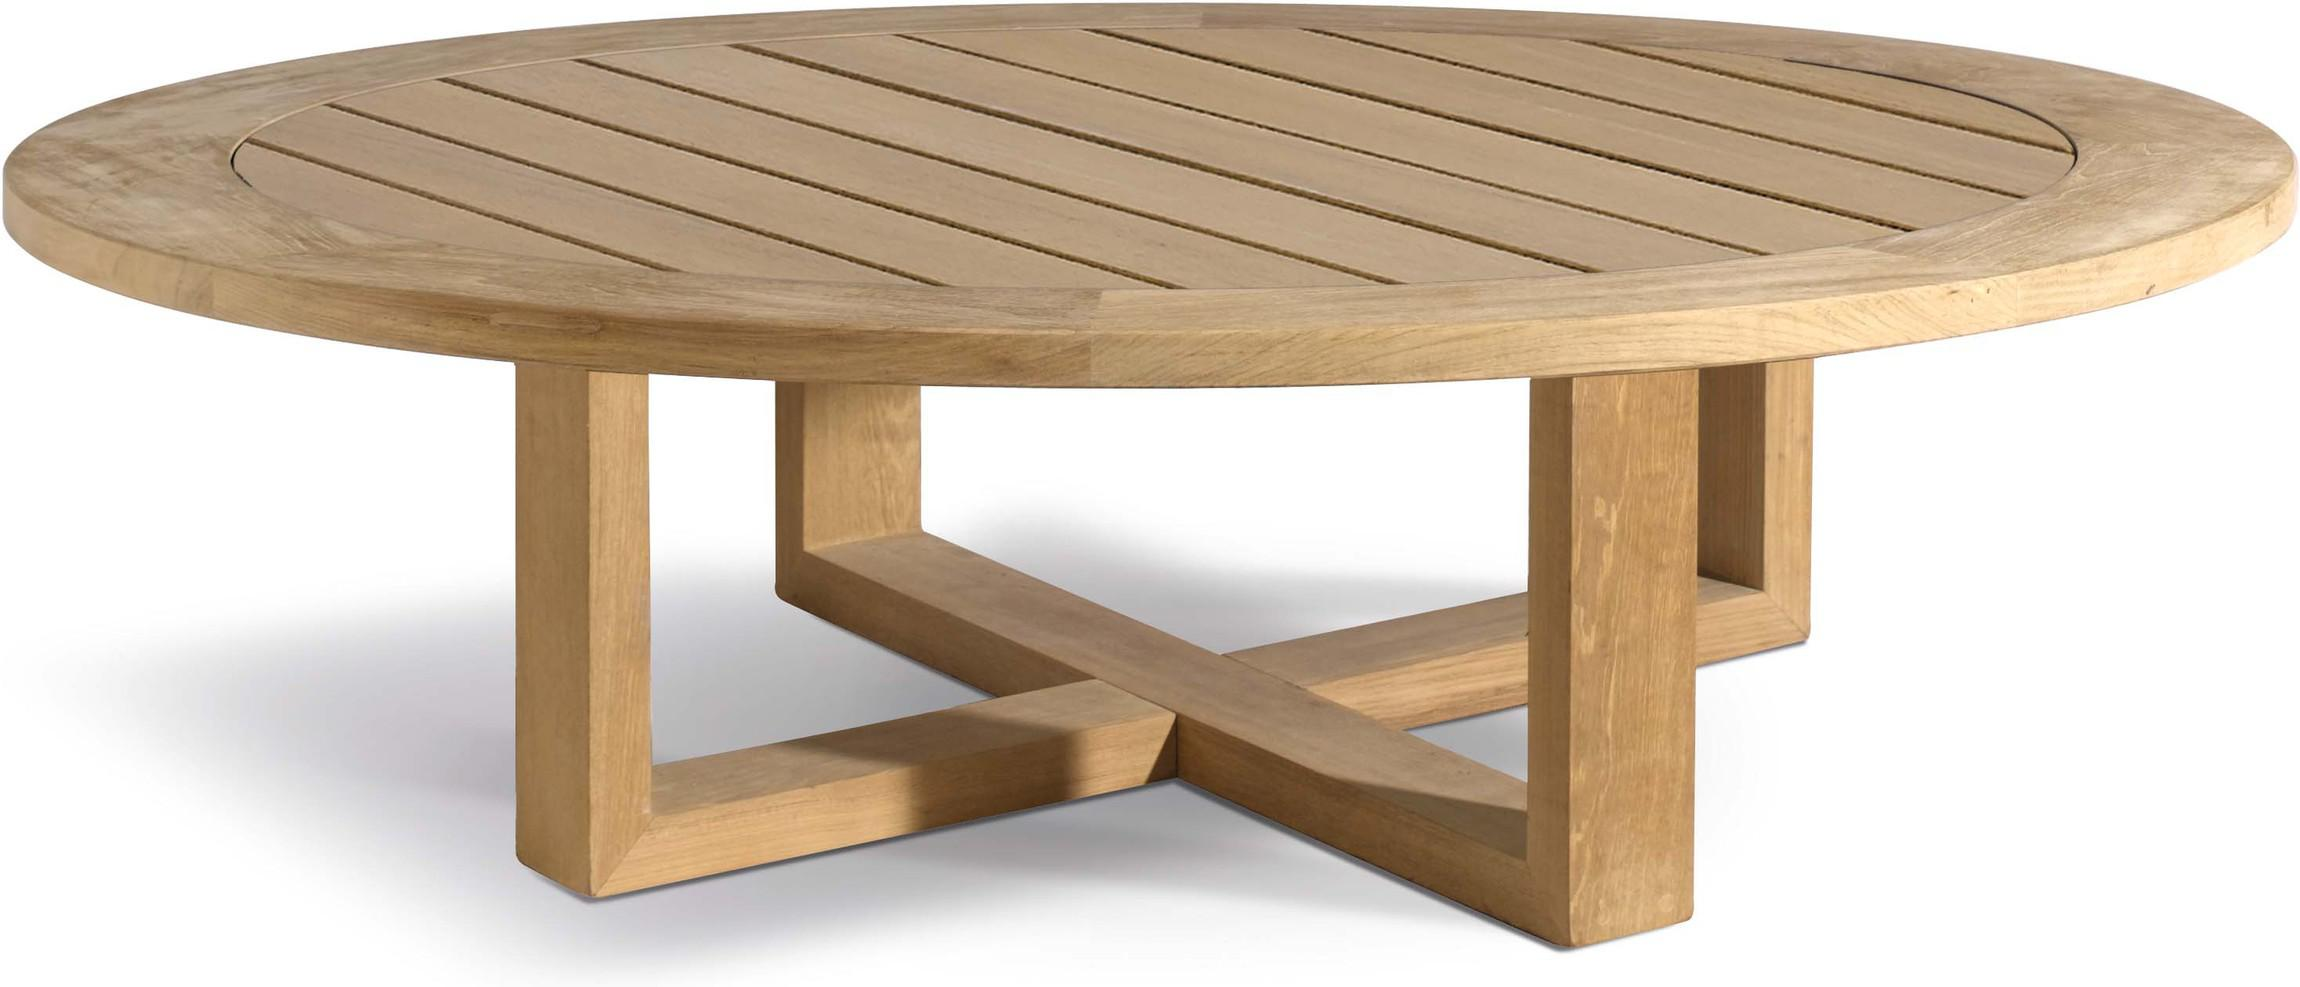 Siena Low table - Teak - Teak 130